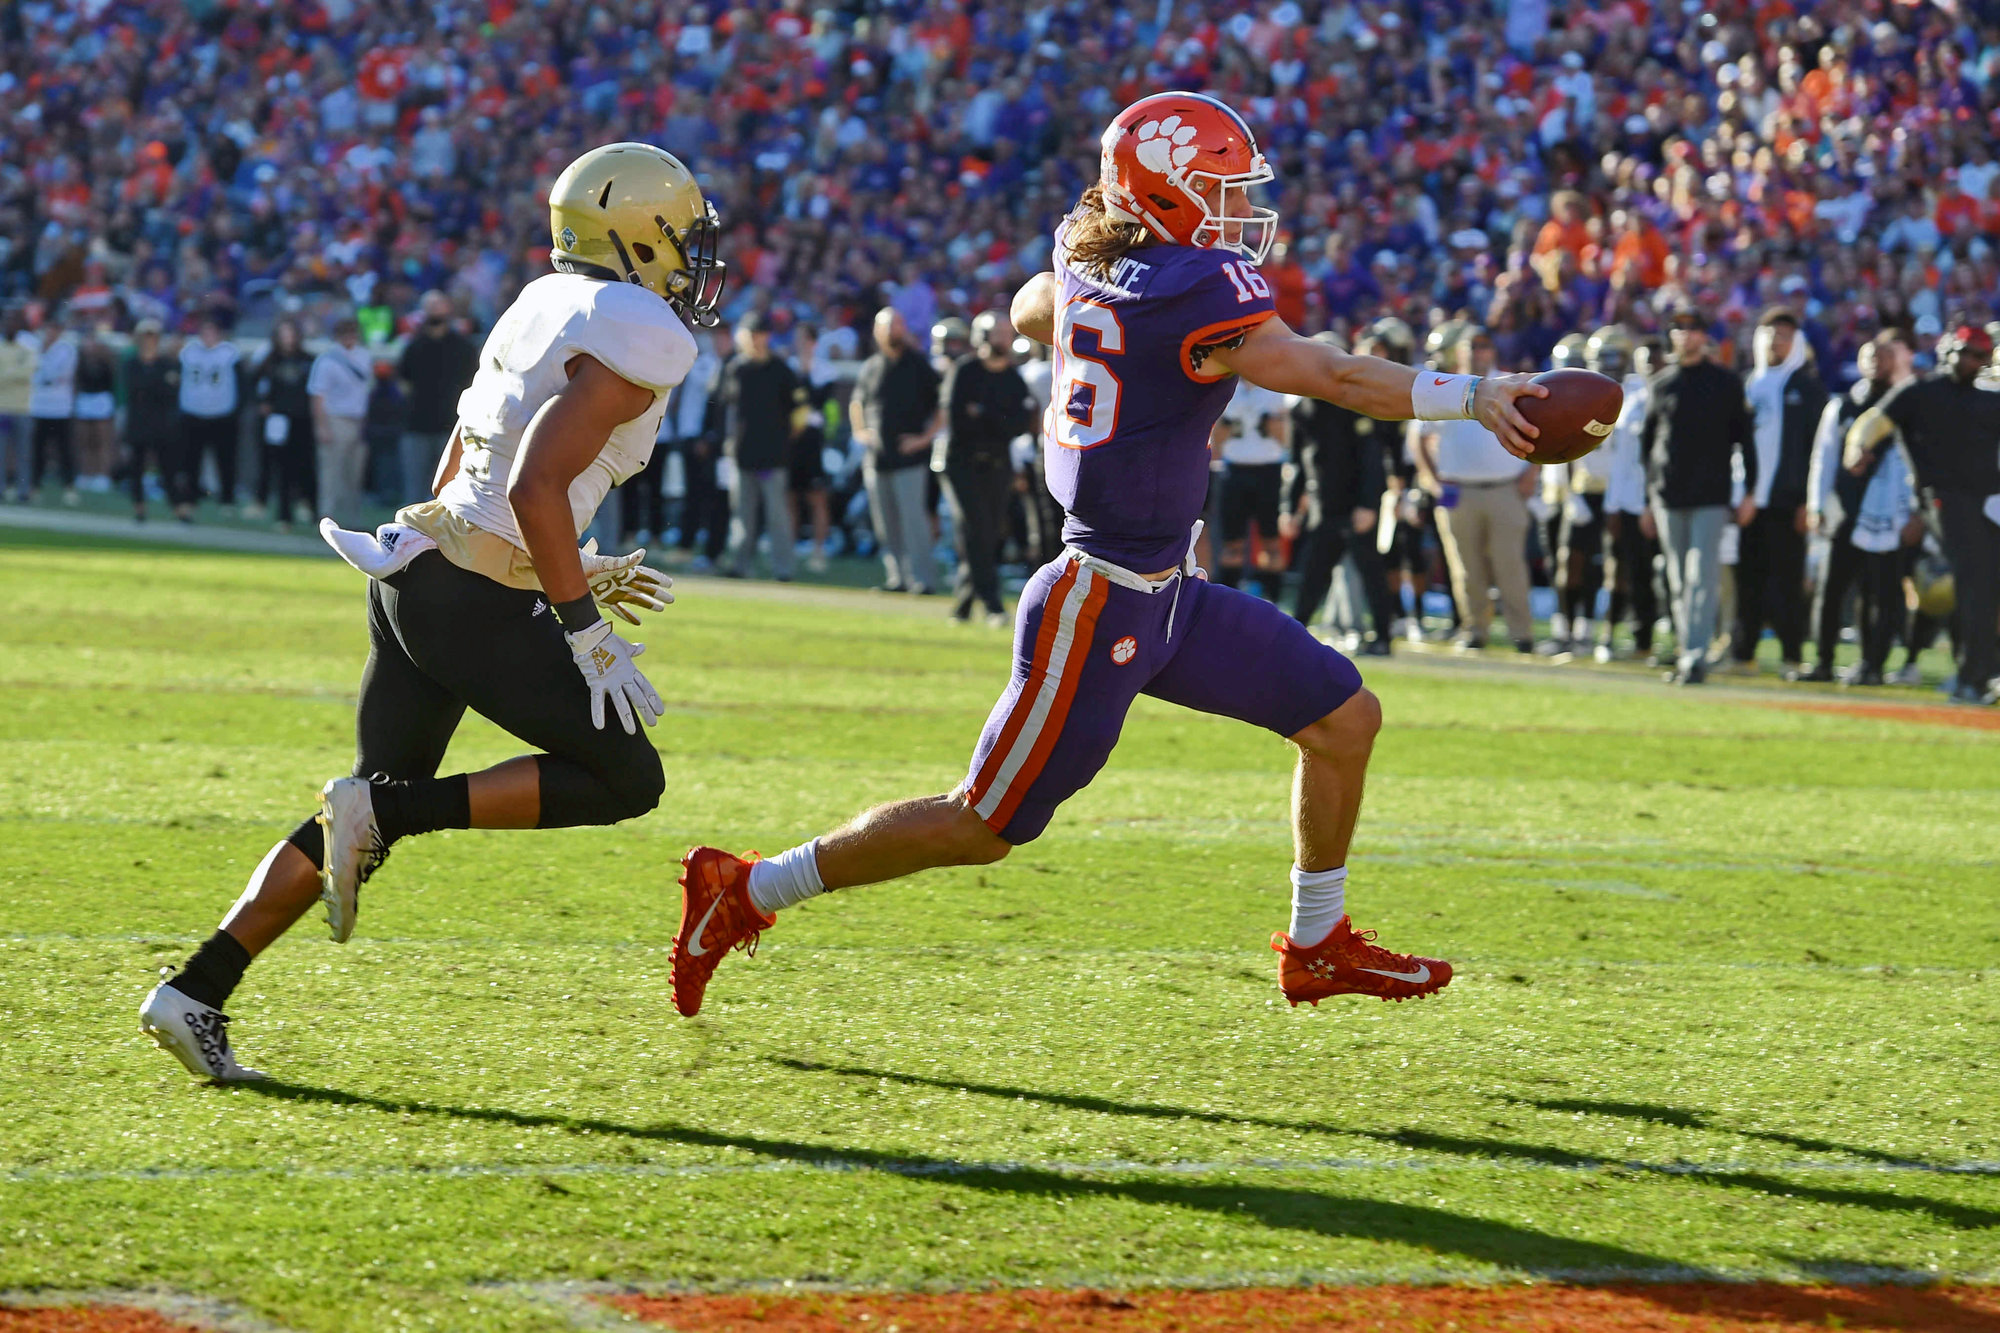 Clemson's Trevor Lawrence, front, scores a touchdown while defended by Wofford's Keyvaun Cobb during the first half of an NCAA college football game Saturday, Nov. 2, 2019,  in Clemson,  S.C.